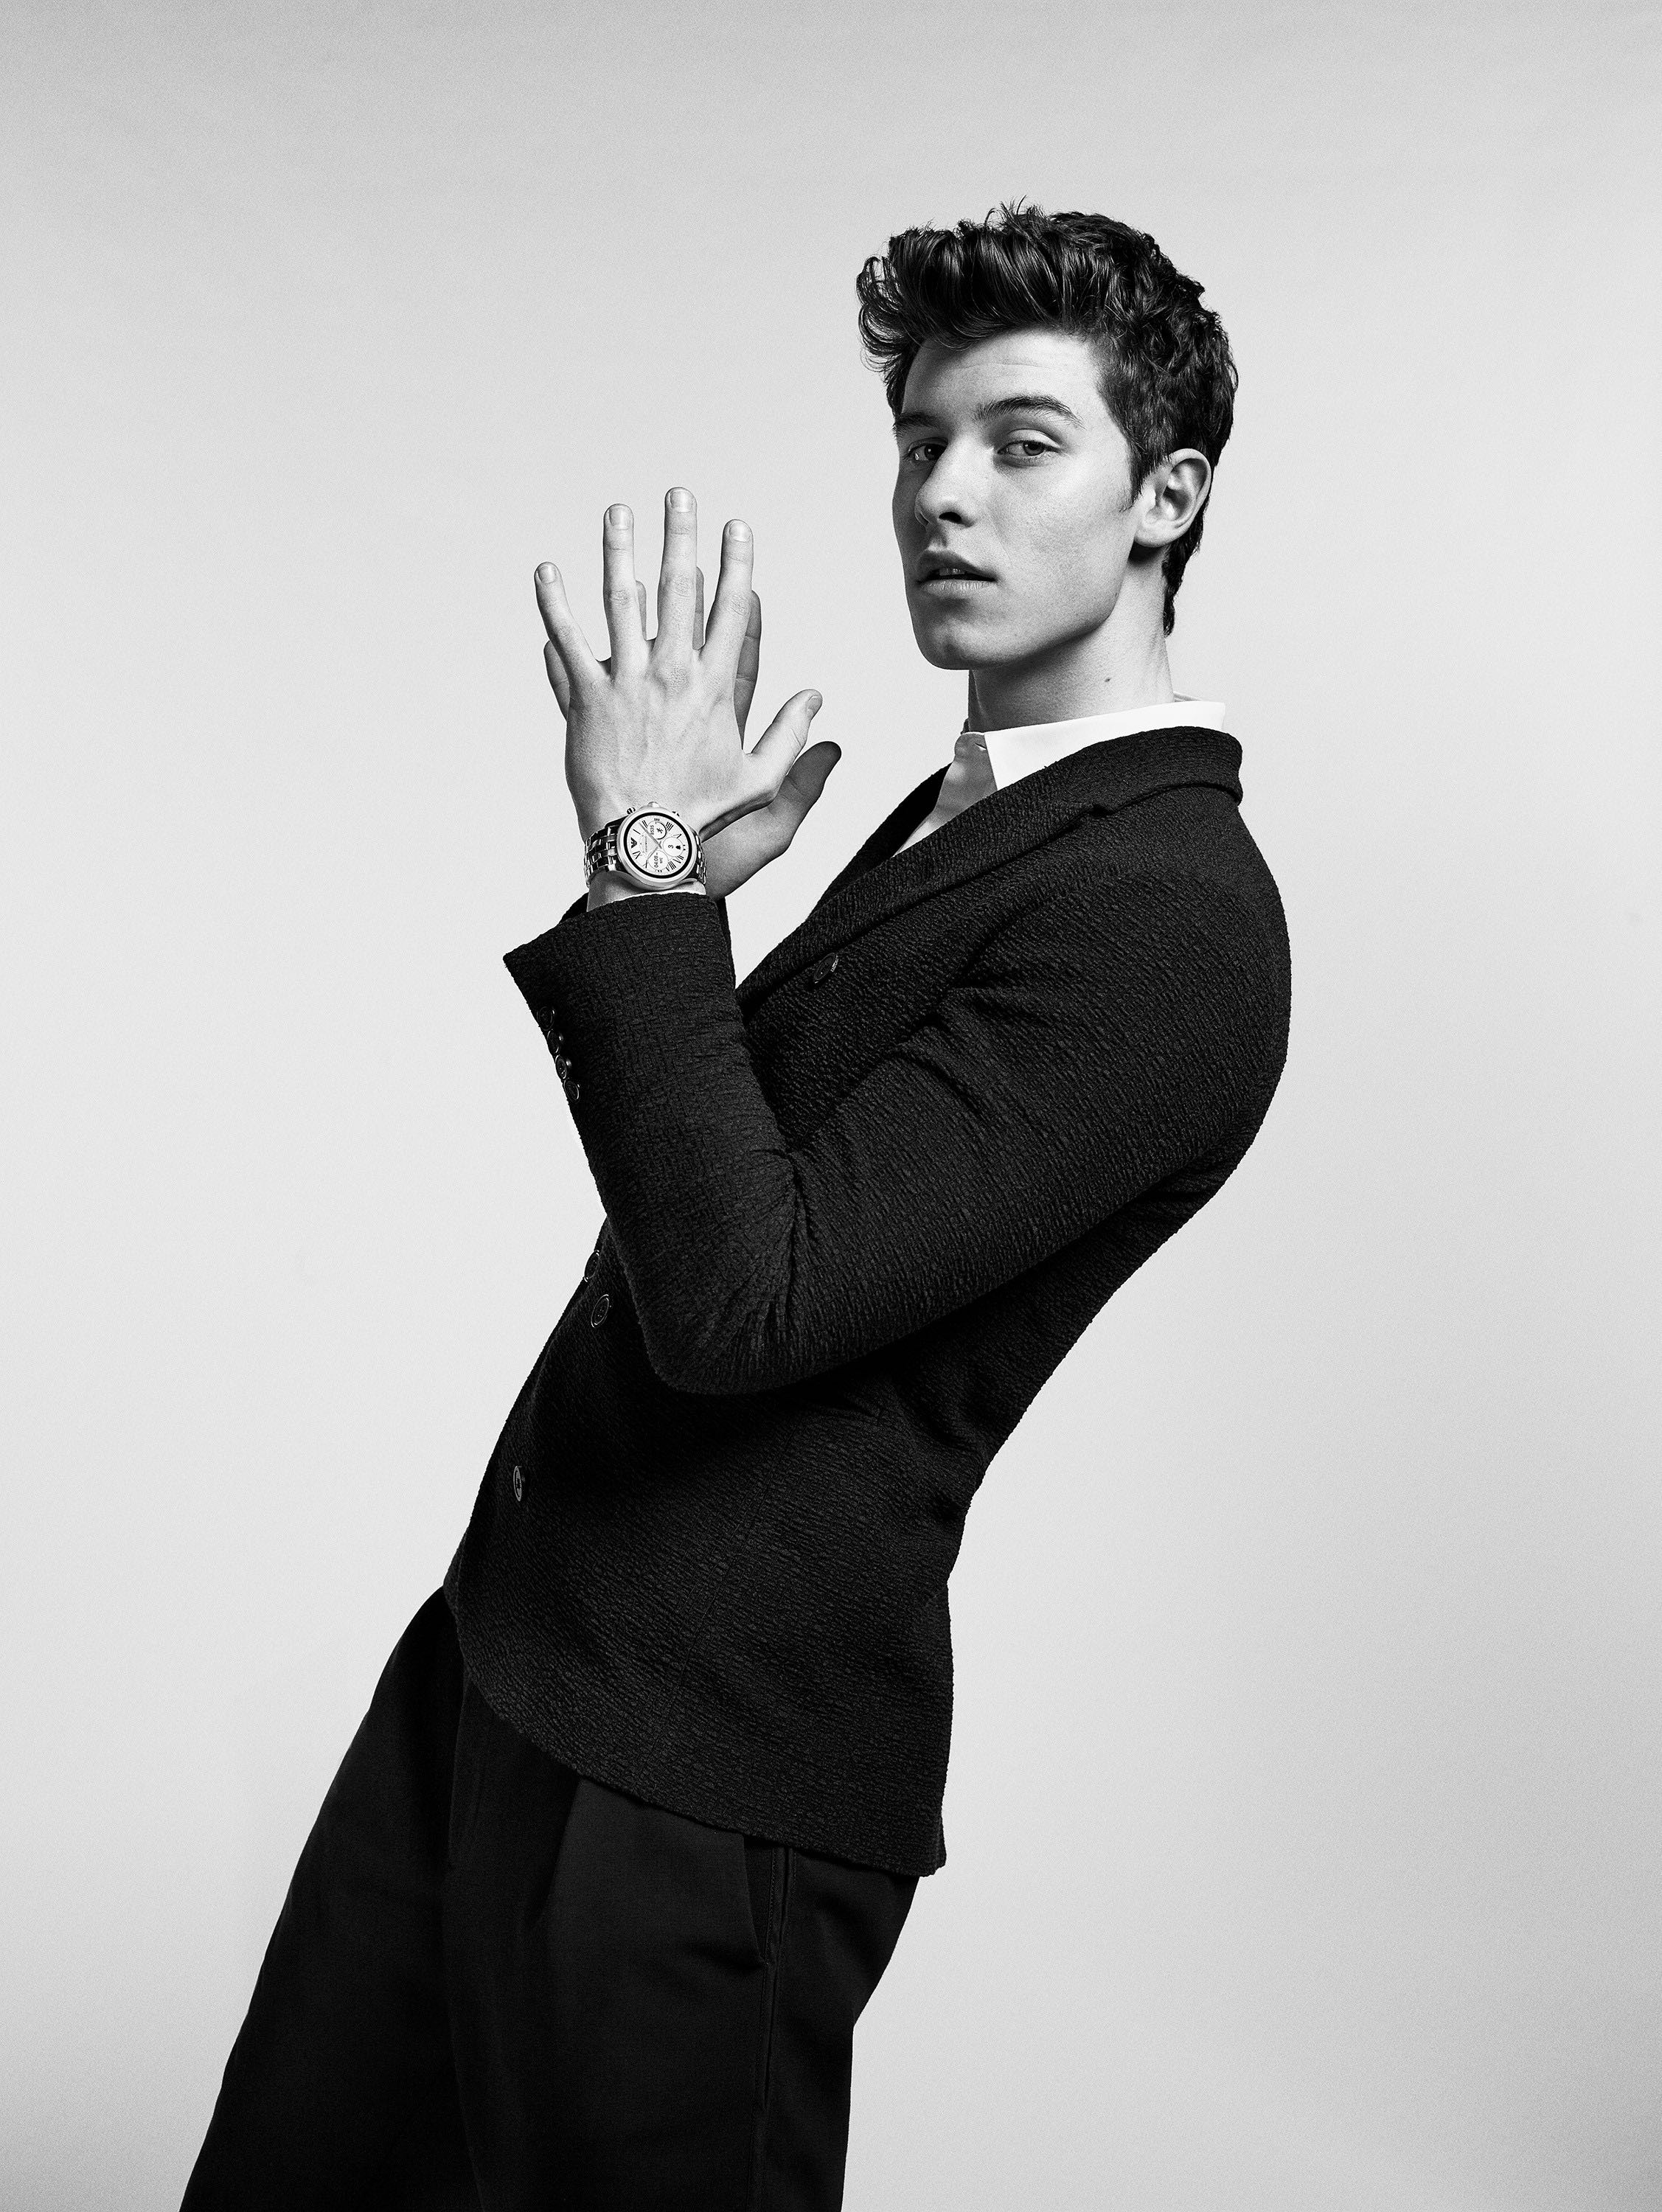 Emporio Armani Smartwatch Campaign with Shawn Mendes